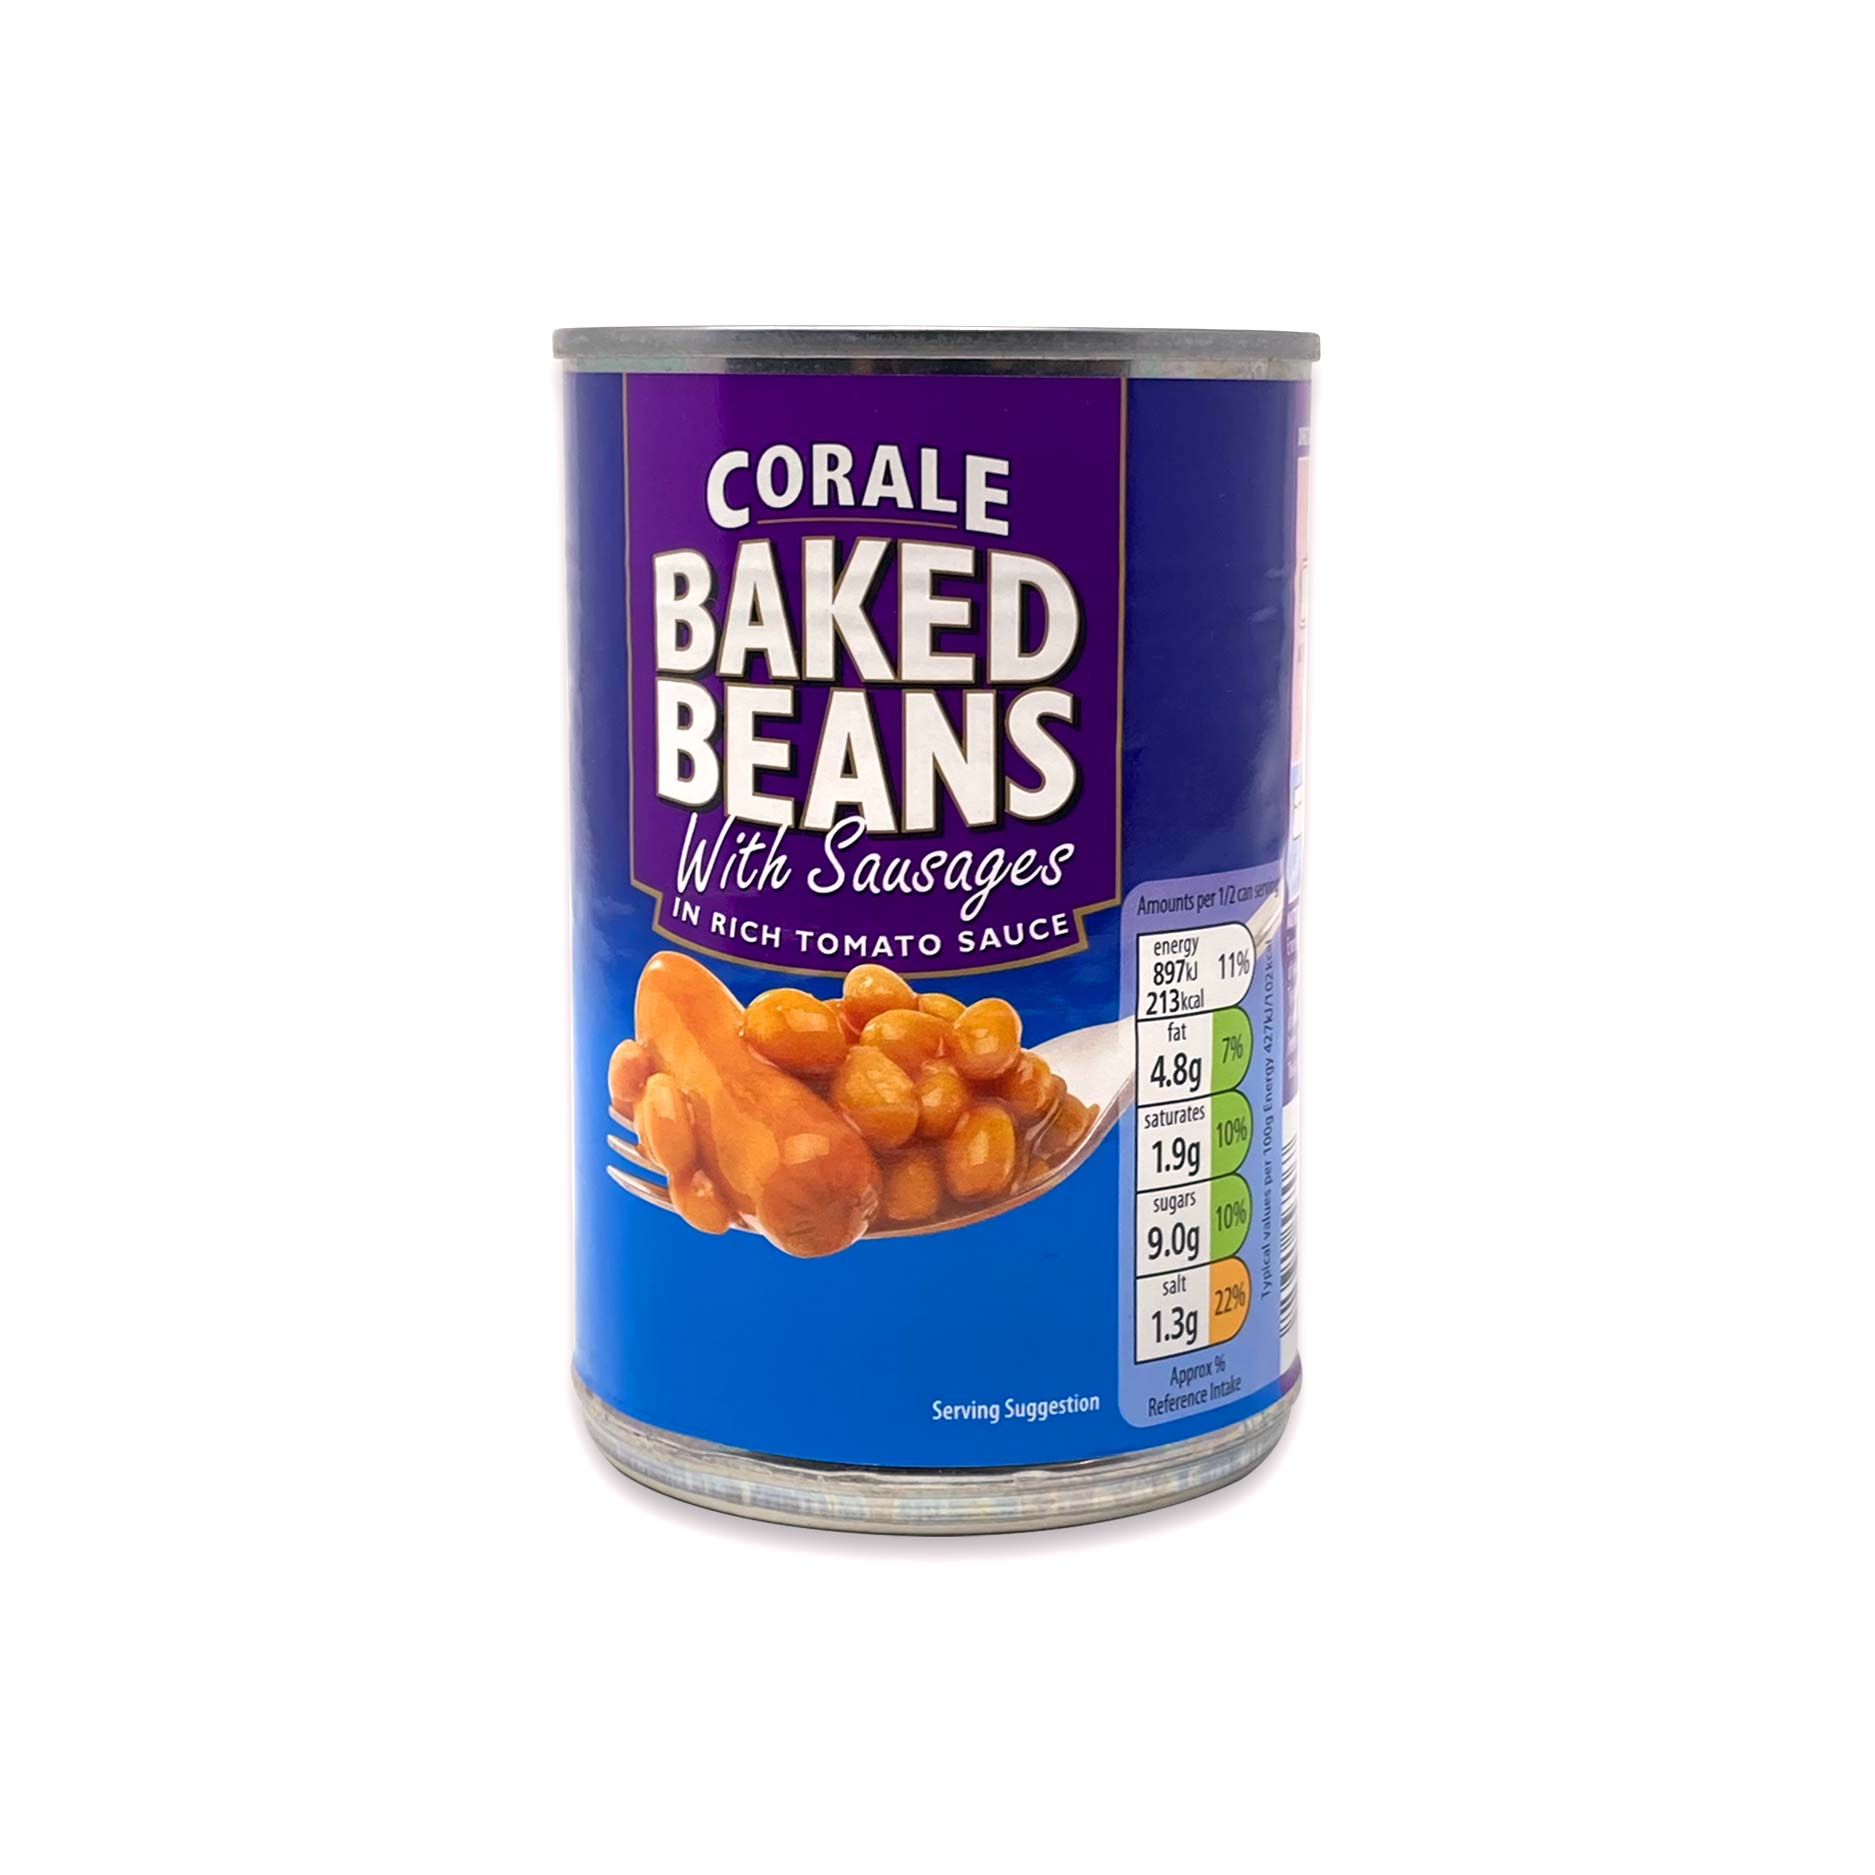 Corale Baked Beans With Sausages 420g Aldi